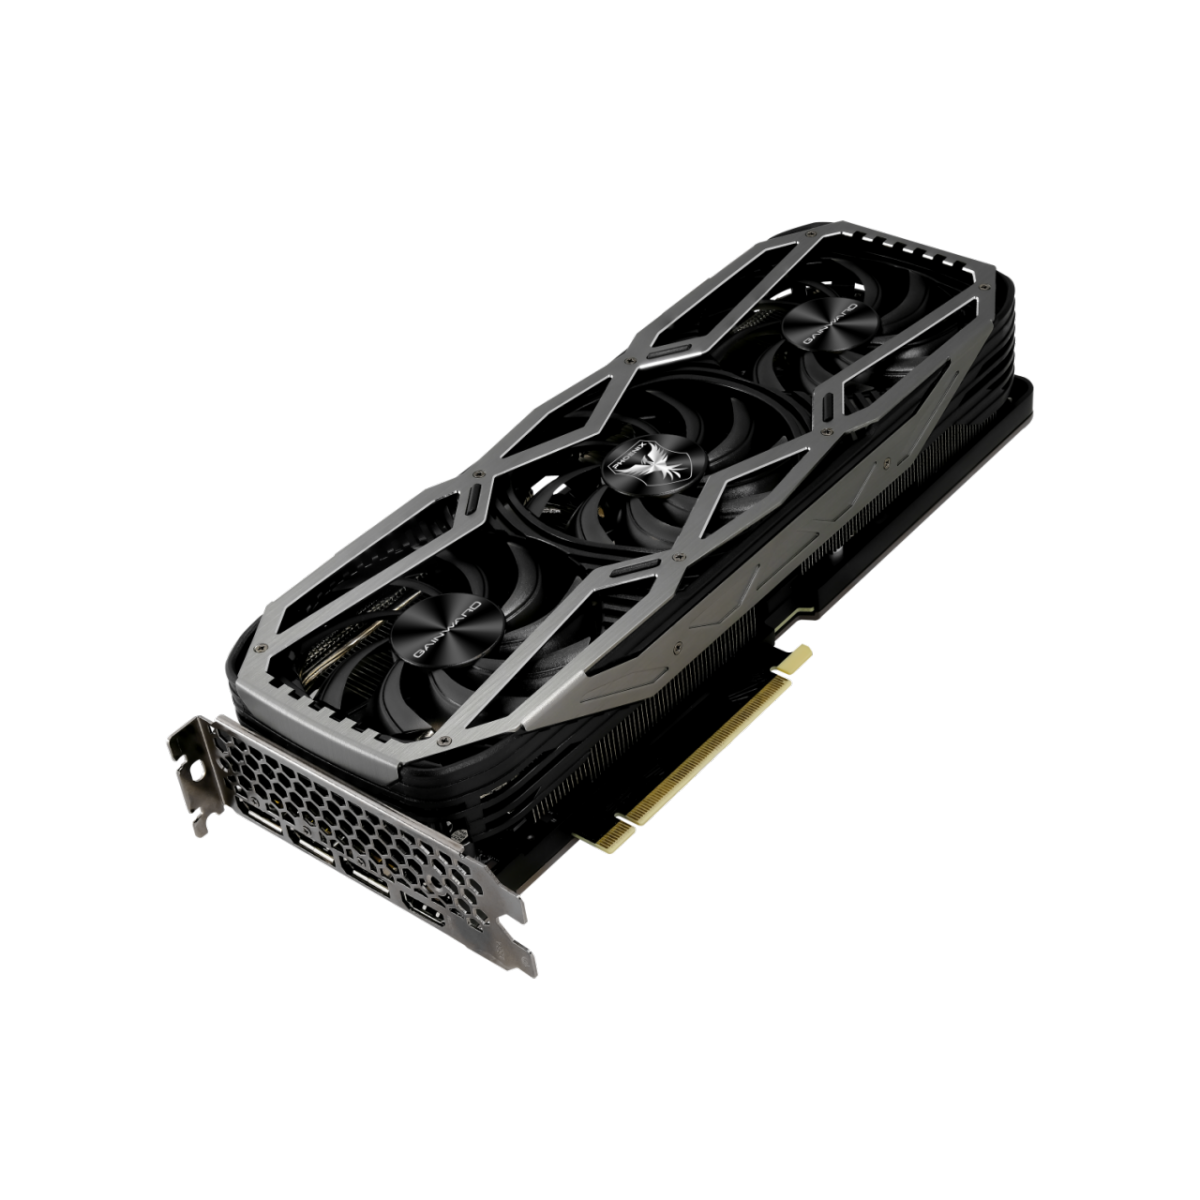 Placa de Vídeo Gainward, GeForce RTX 3090 Phoenix, 24GB, GDDR6, 384Bit, NED3090019SB-132BX